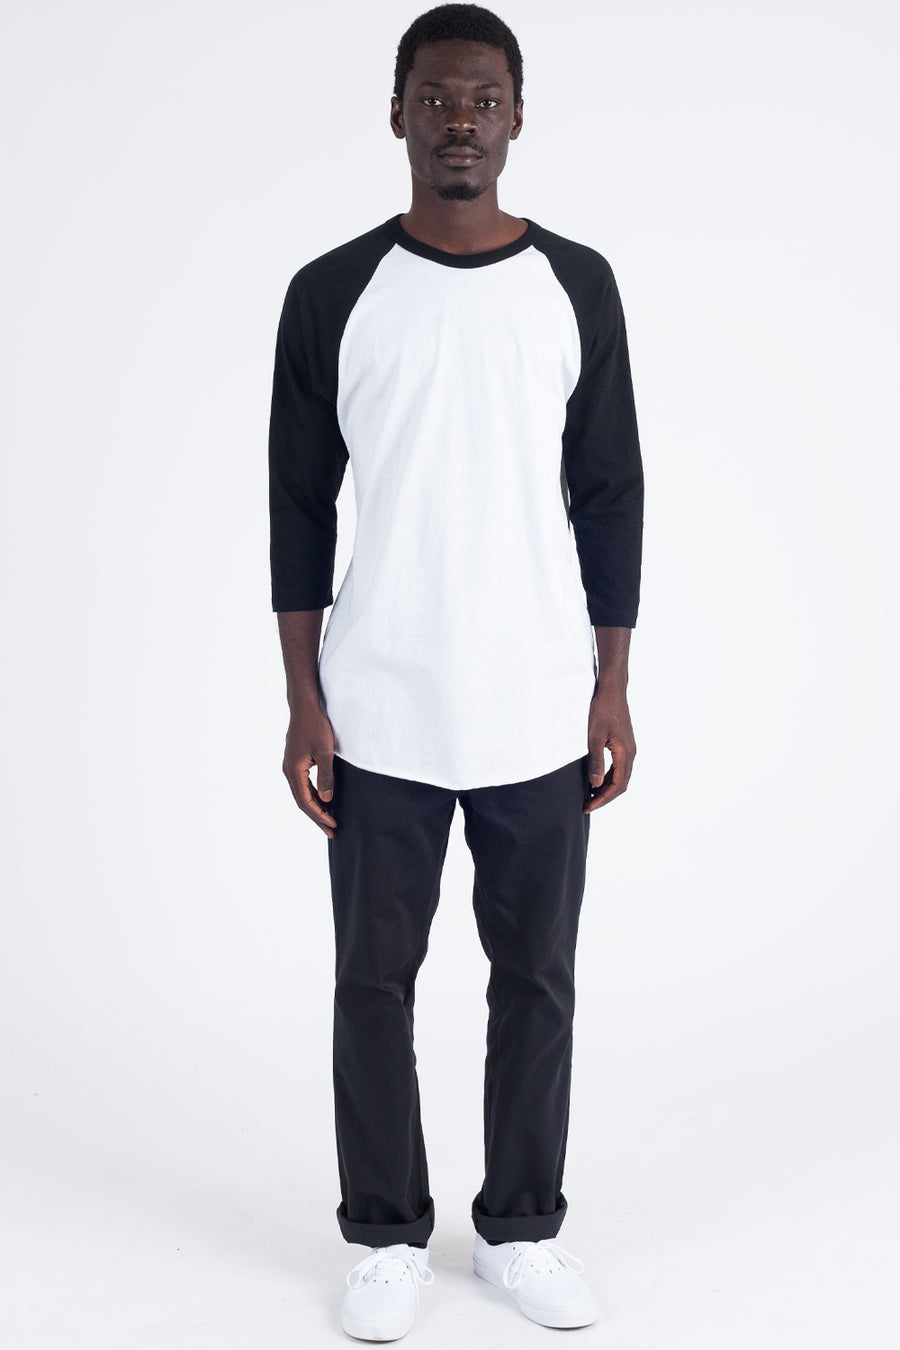 211: UNISEX POLY-COTTON 3/4 SLEEVE RAGLAN